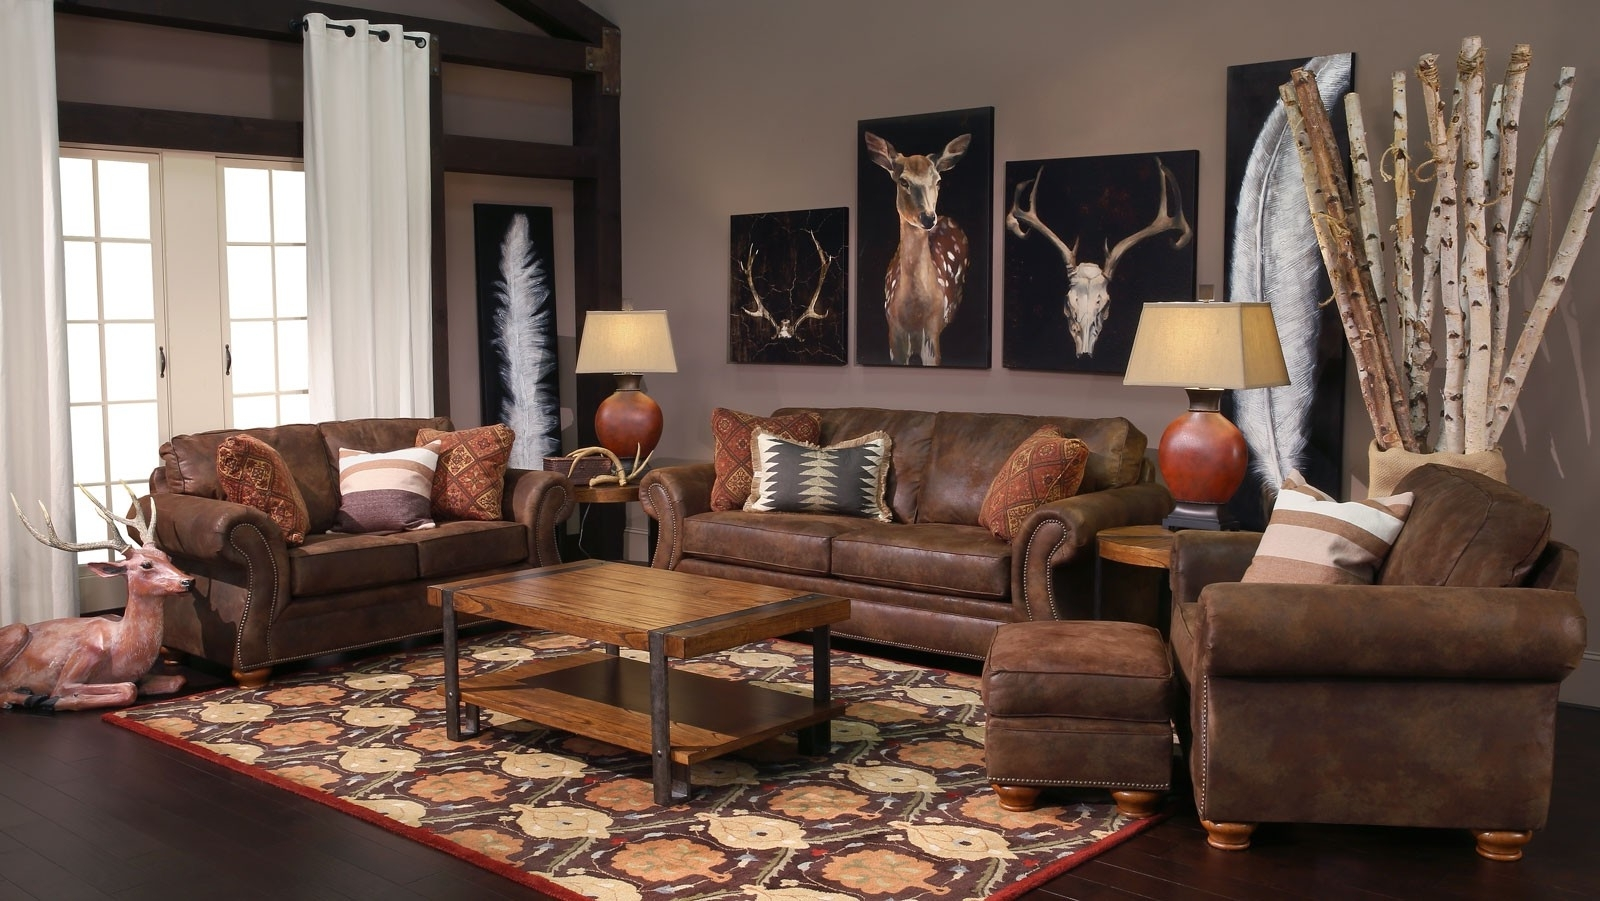 Gallery Furniture Intended For Sectional Sofas In Houston Tx (View 4 of 20)